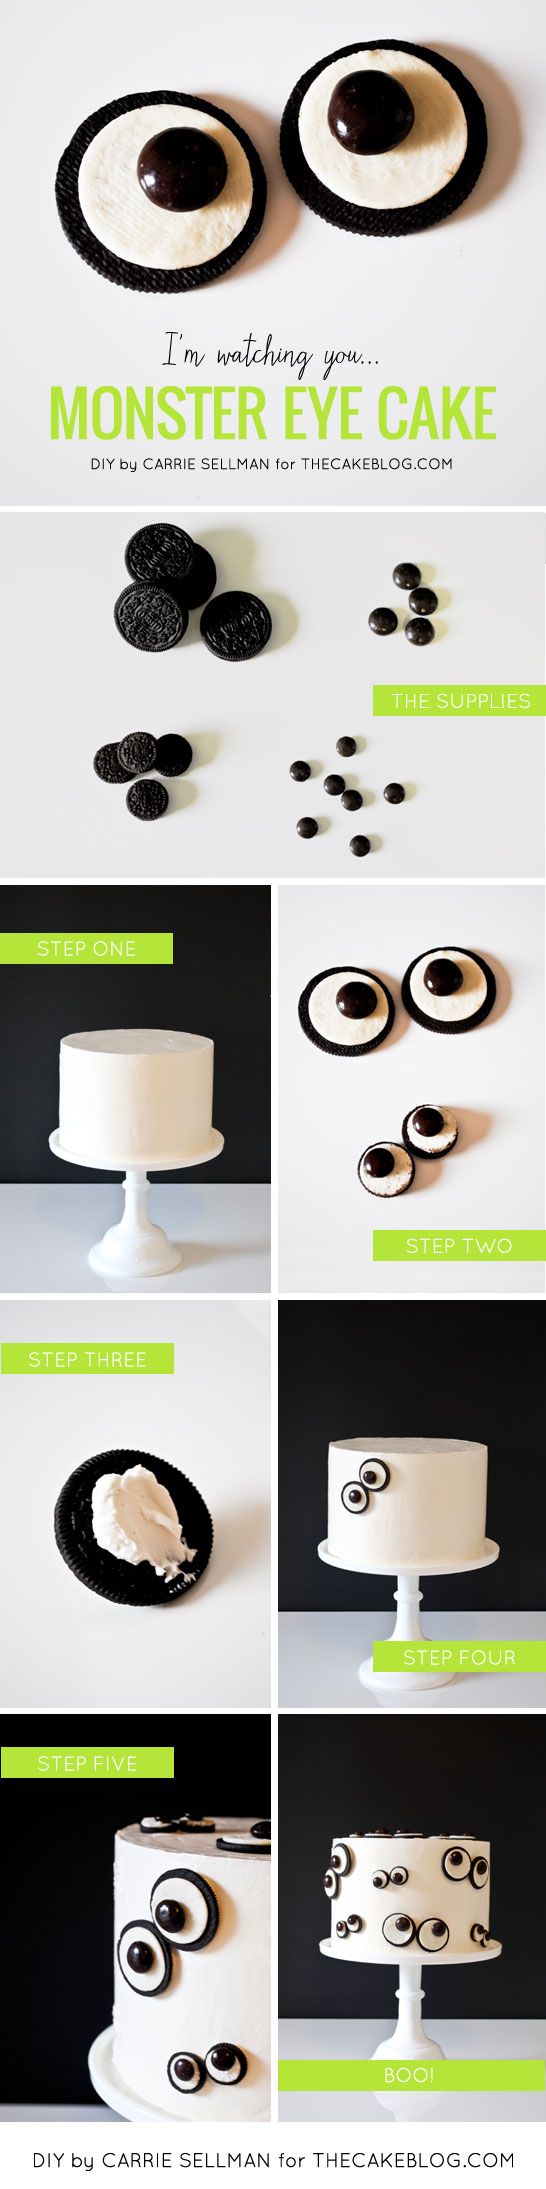 DIY Monster Eye Cake  | by Carrie Sellman  |  TheCakeBlog.com